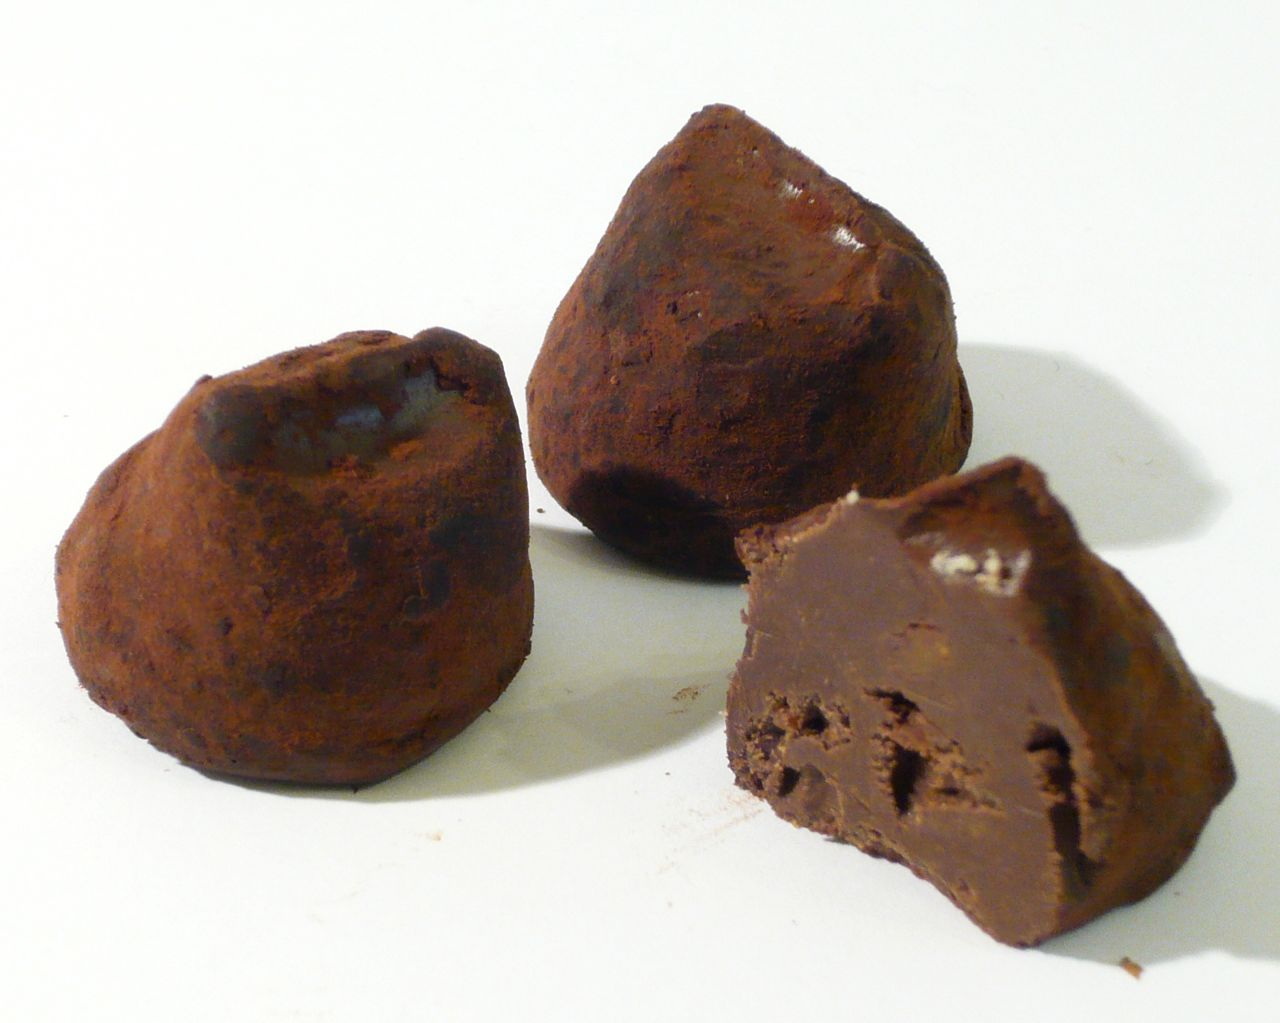 Monty Bojangles Cocoa Dusted Toffee Truffles Chocolate Review